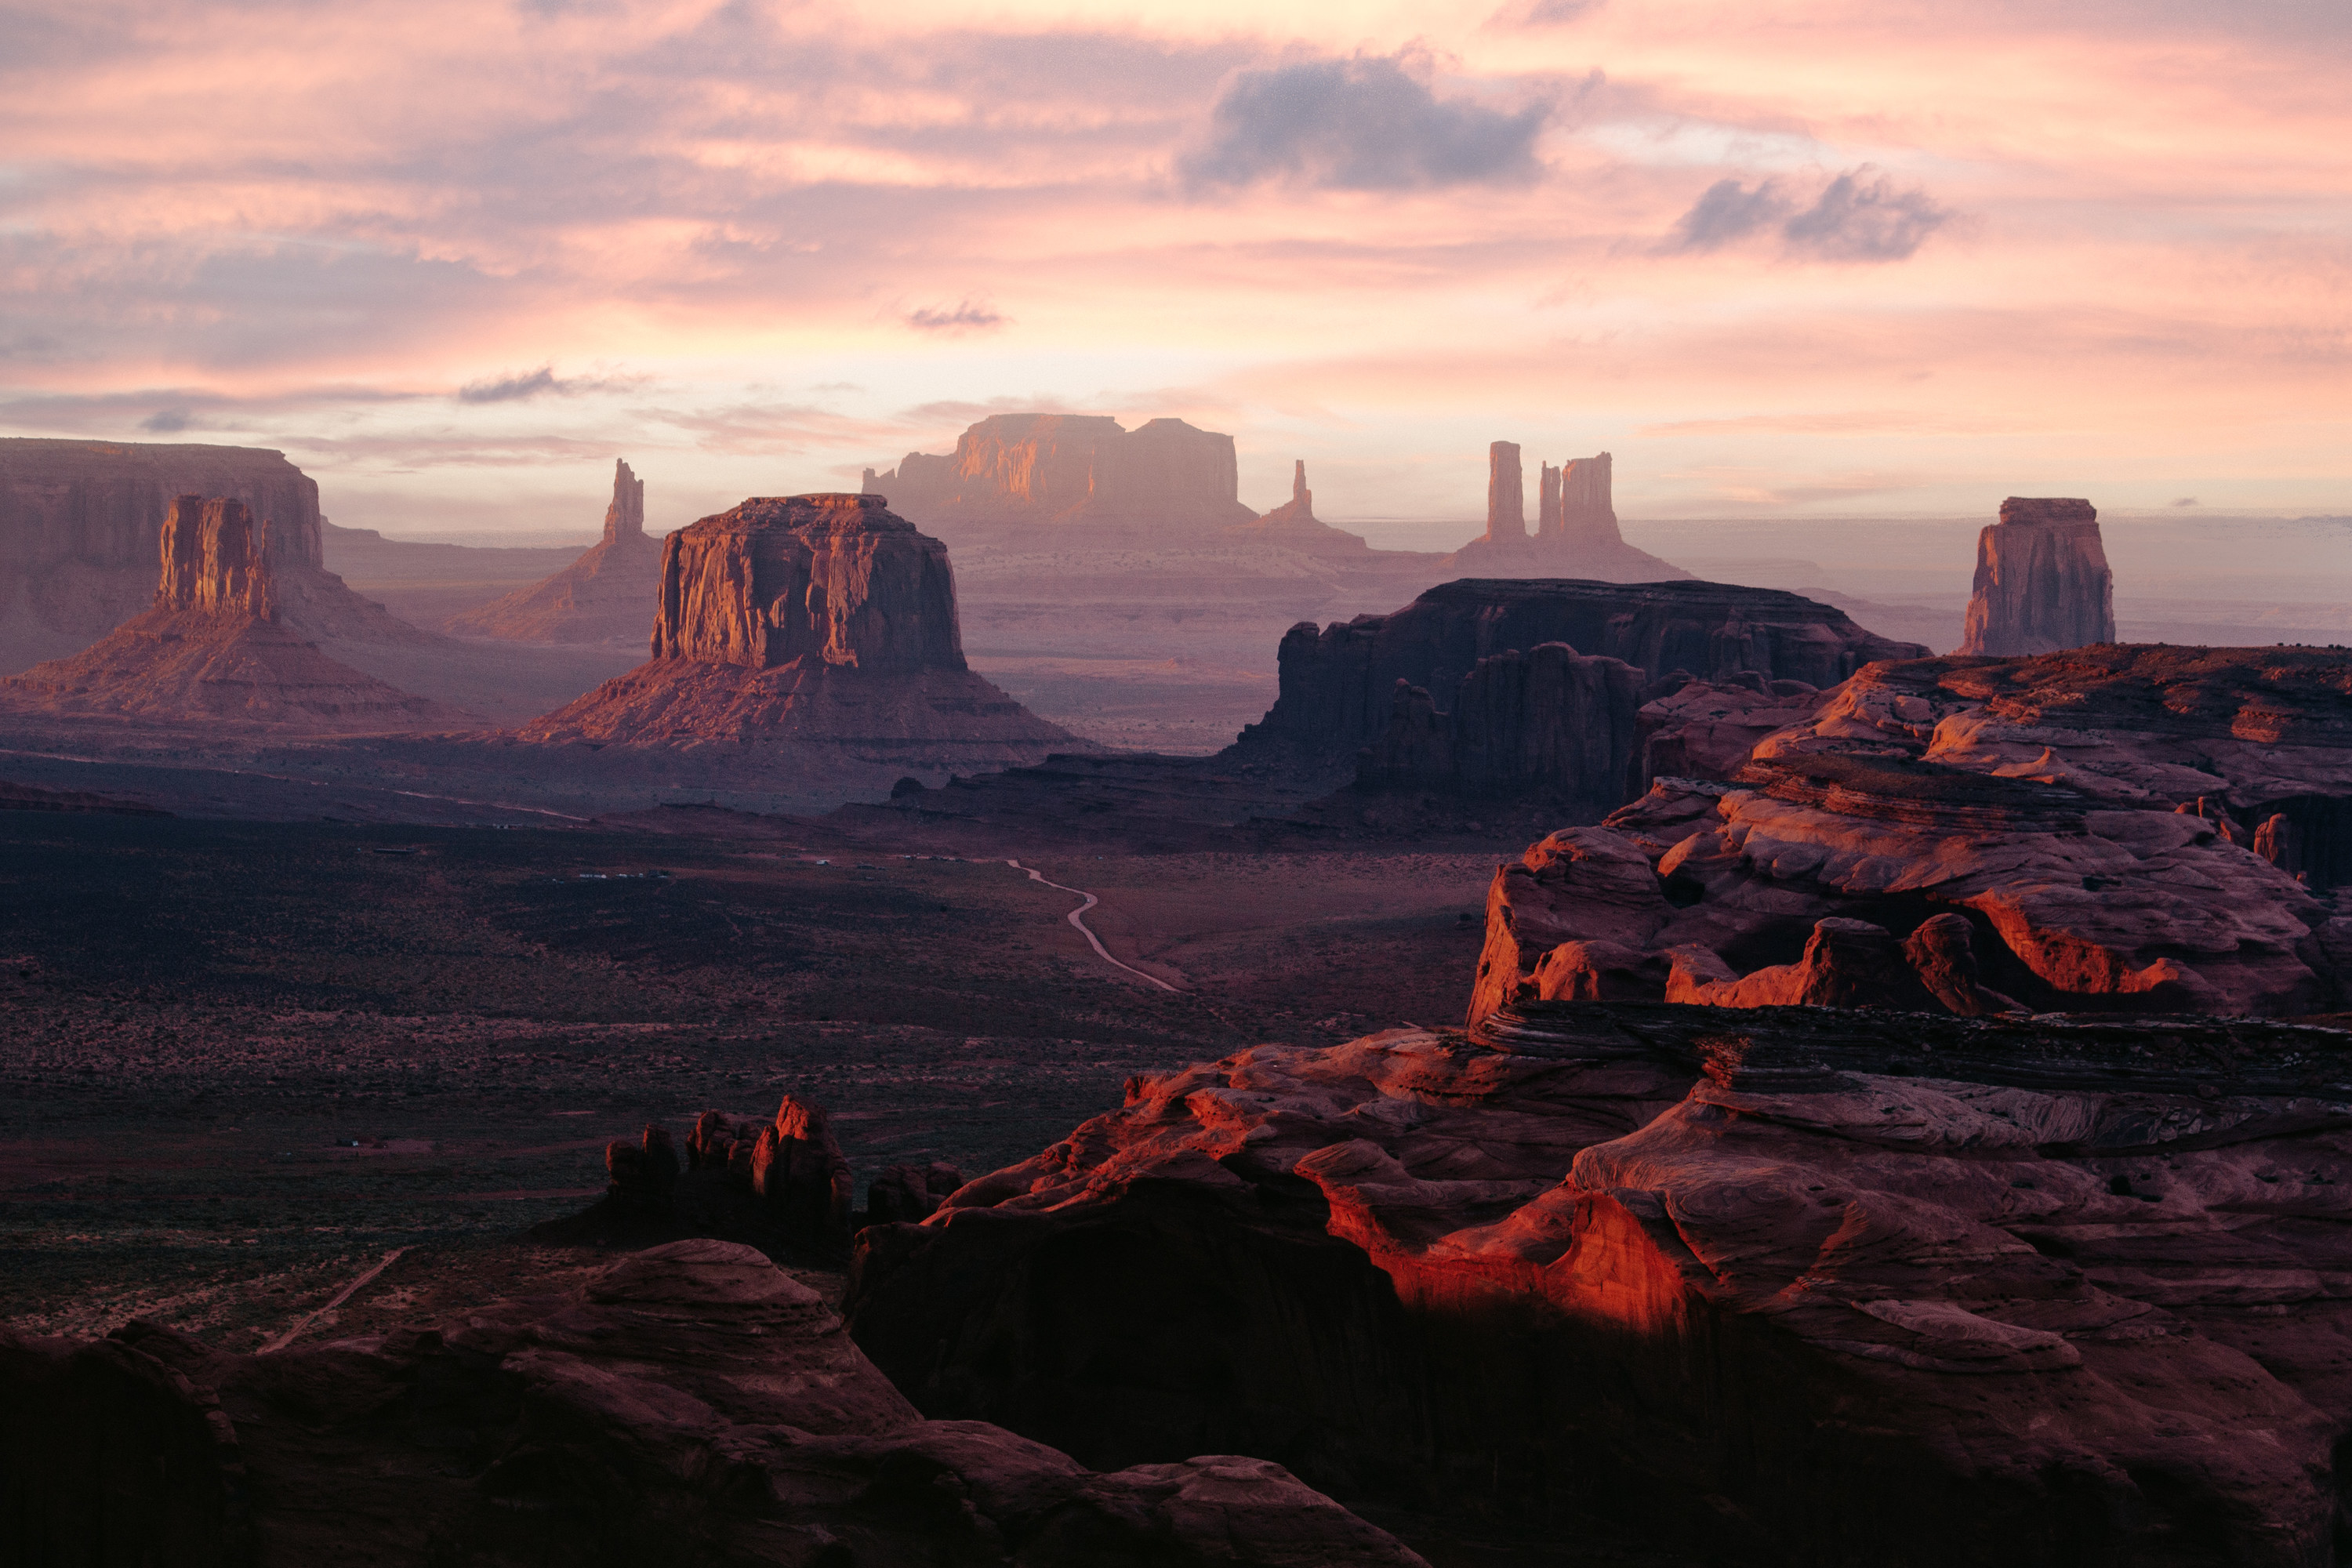 the grand canyon and desert